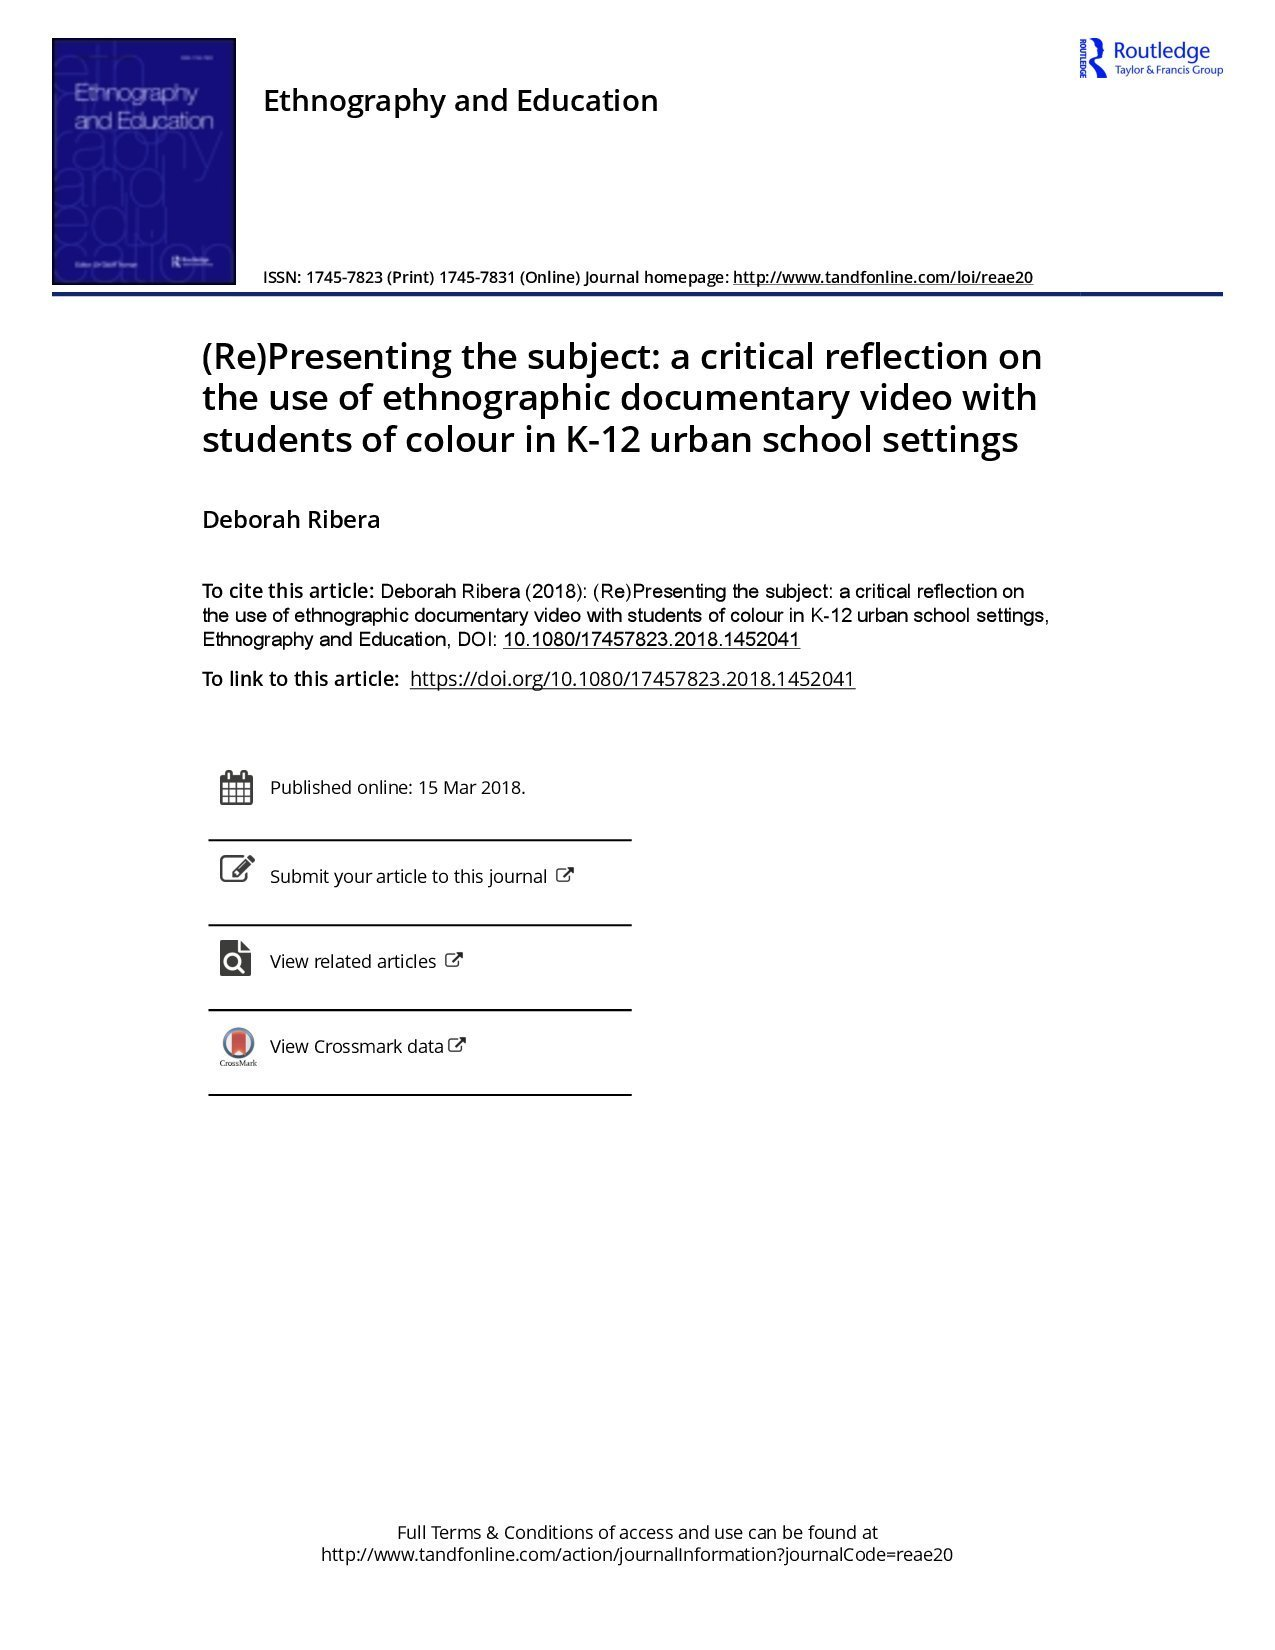 (Re)Presenting the subject: a critical reflection on the use of ethnographic documentary video with students of colour in K-12 urban school settings